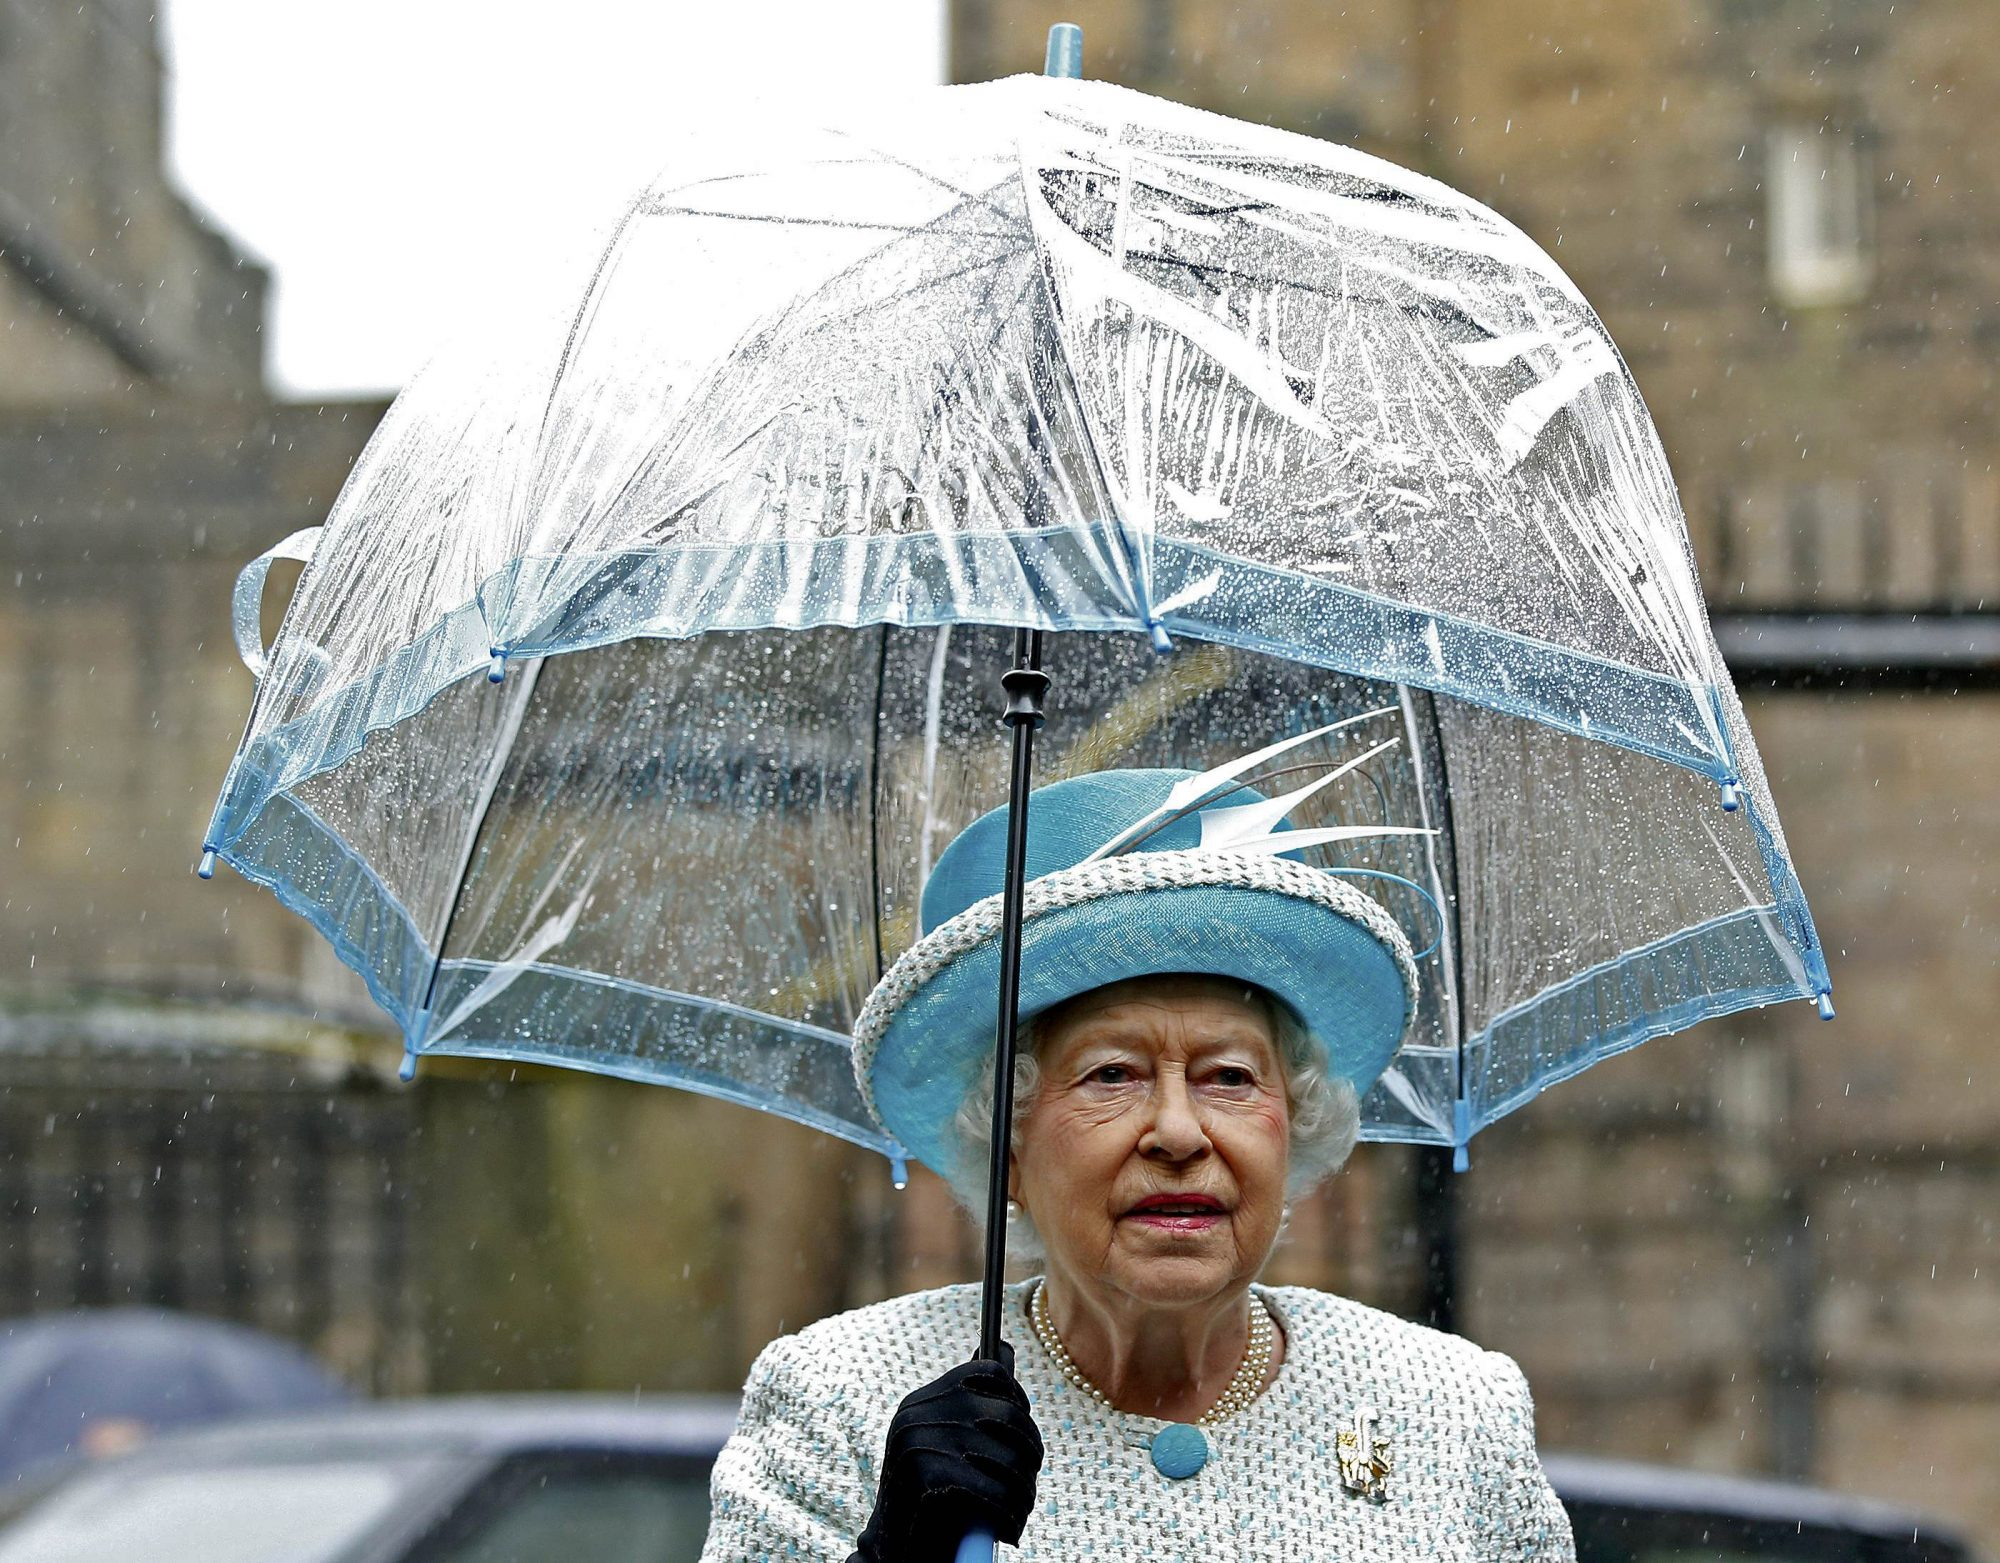 Queen Elizabeth and Blue Umbrella